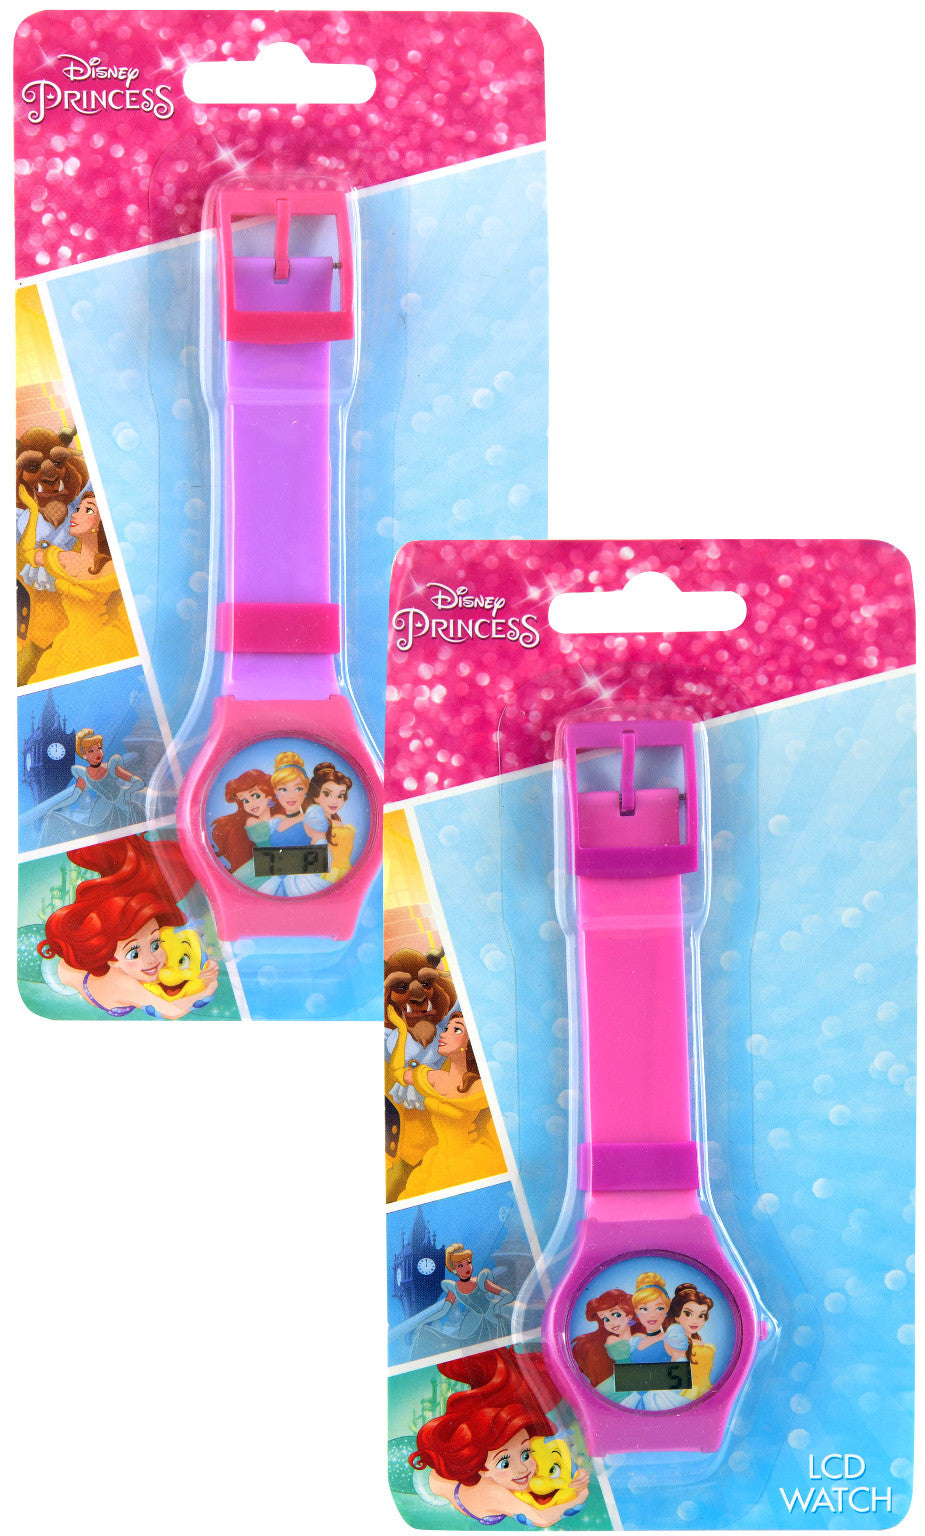 Princess Digital Watch - Assorted - CASE OF 144